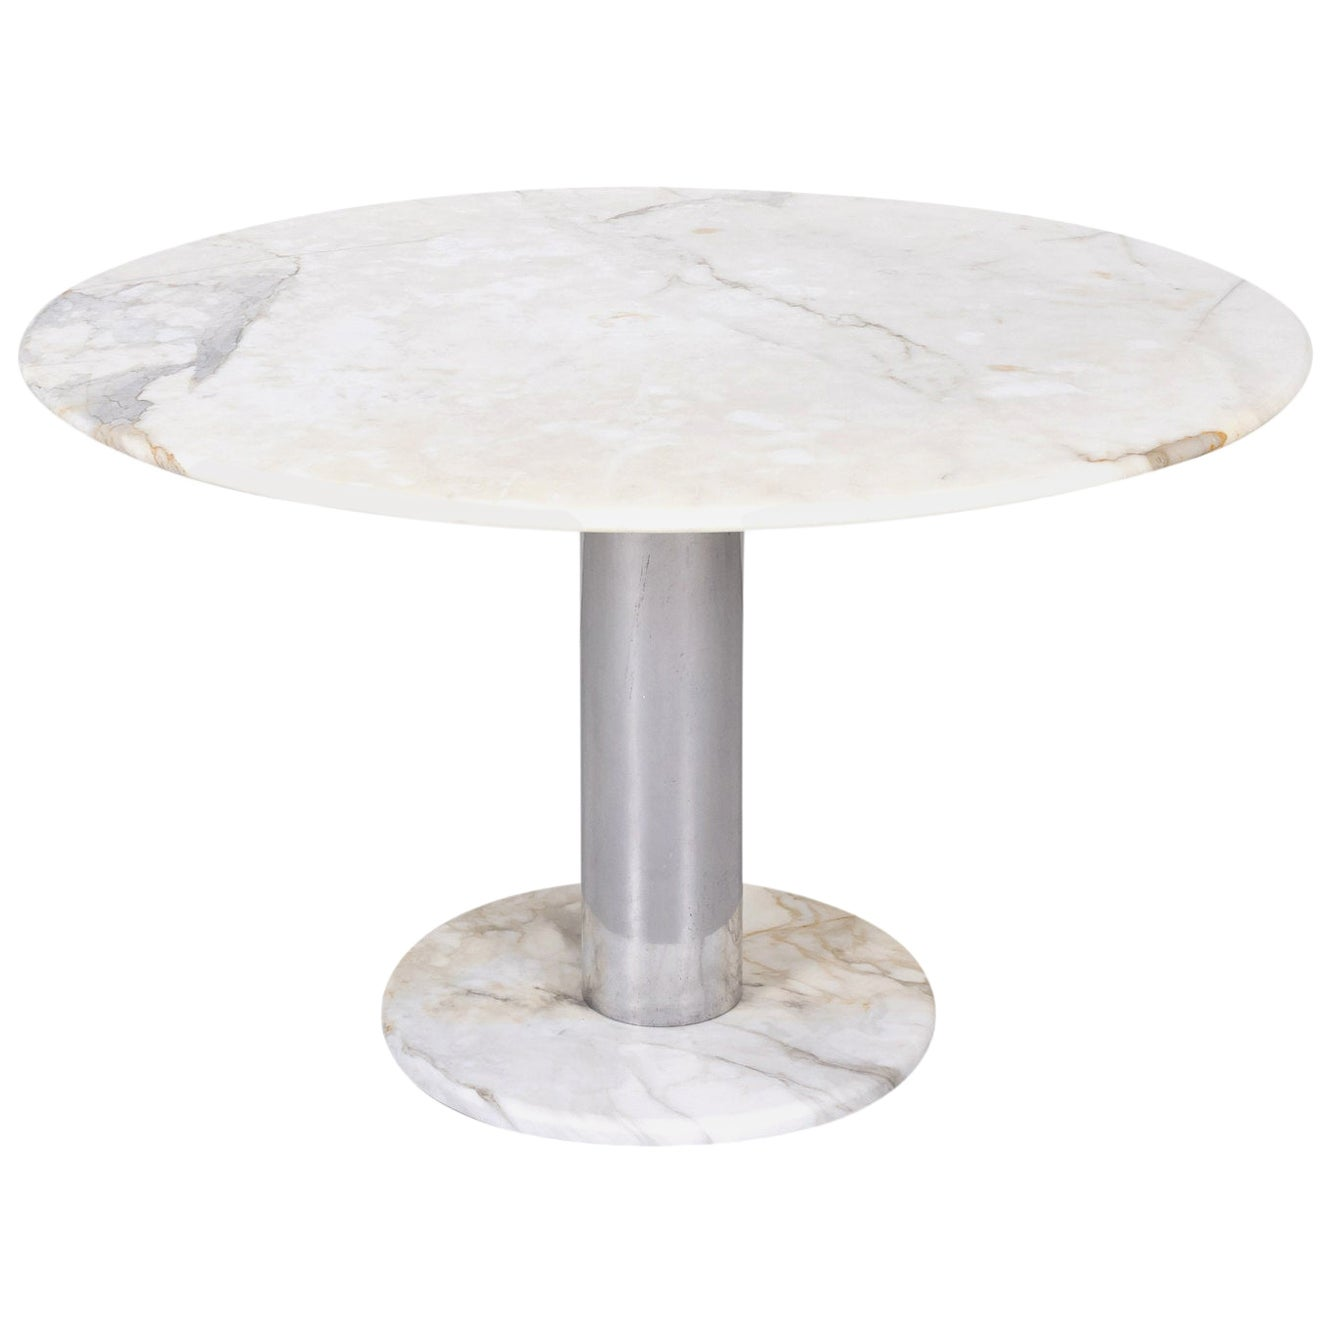 1970s French Round Carrara Marble-Top Pedestal Dining Table with Marble Base